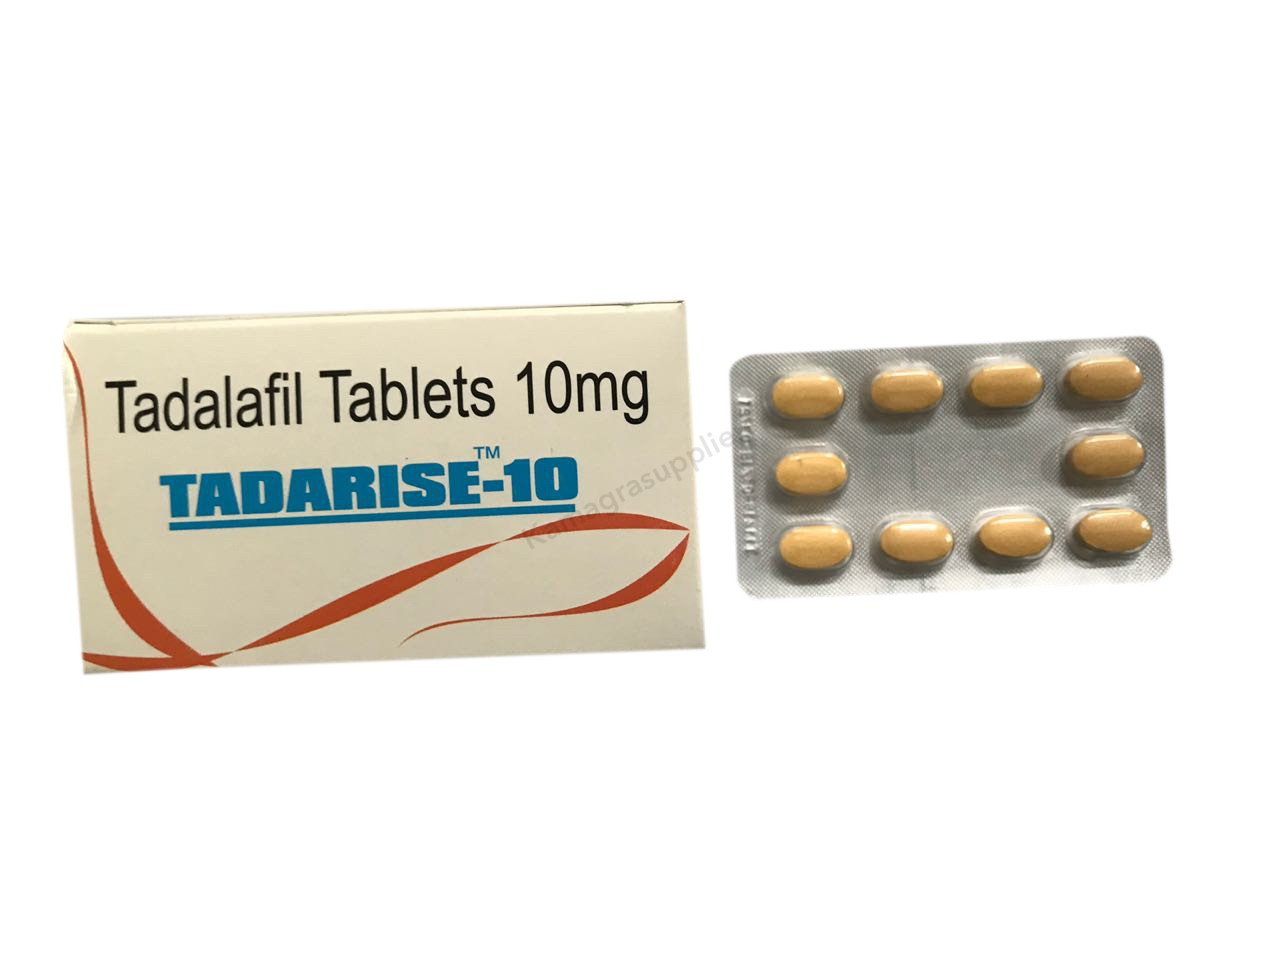 Tadarise 10mg Tablets